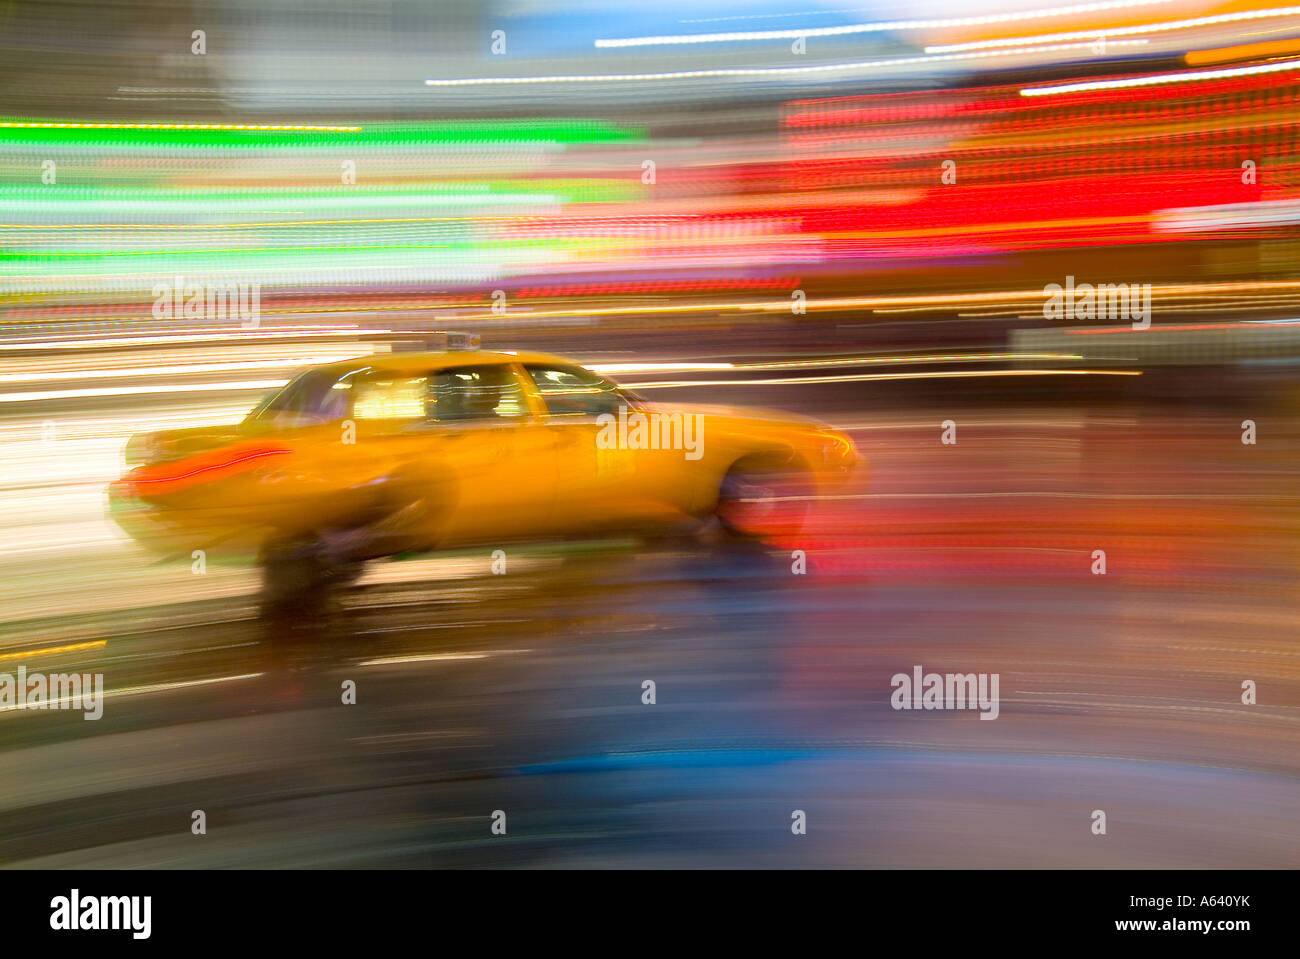 Taxi Cab, New York City At Night With Motion Blur And Bright Lights, Times Square, New York City, USA - Stock Image